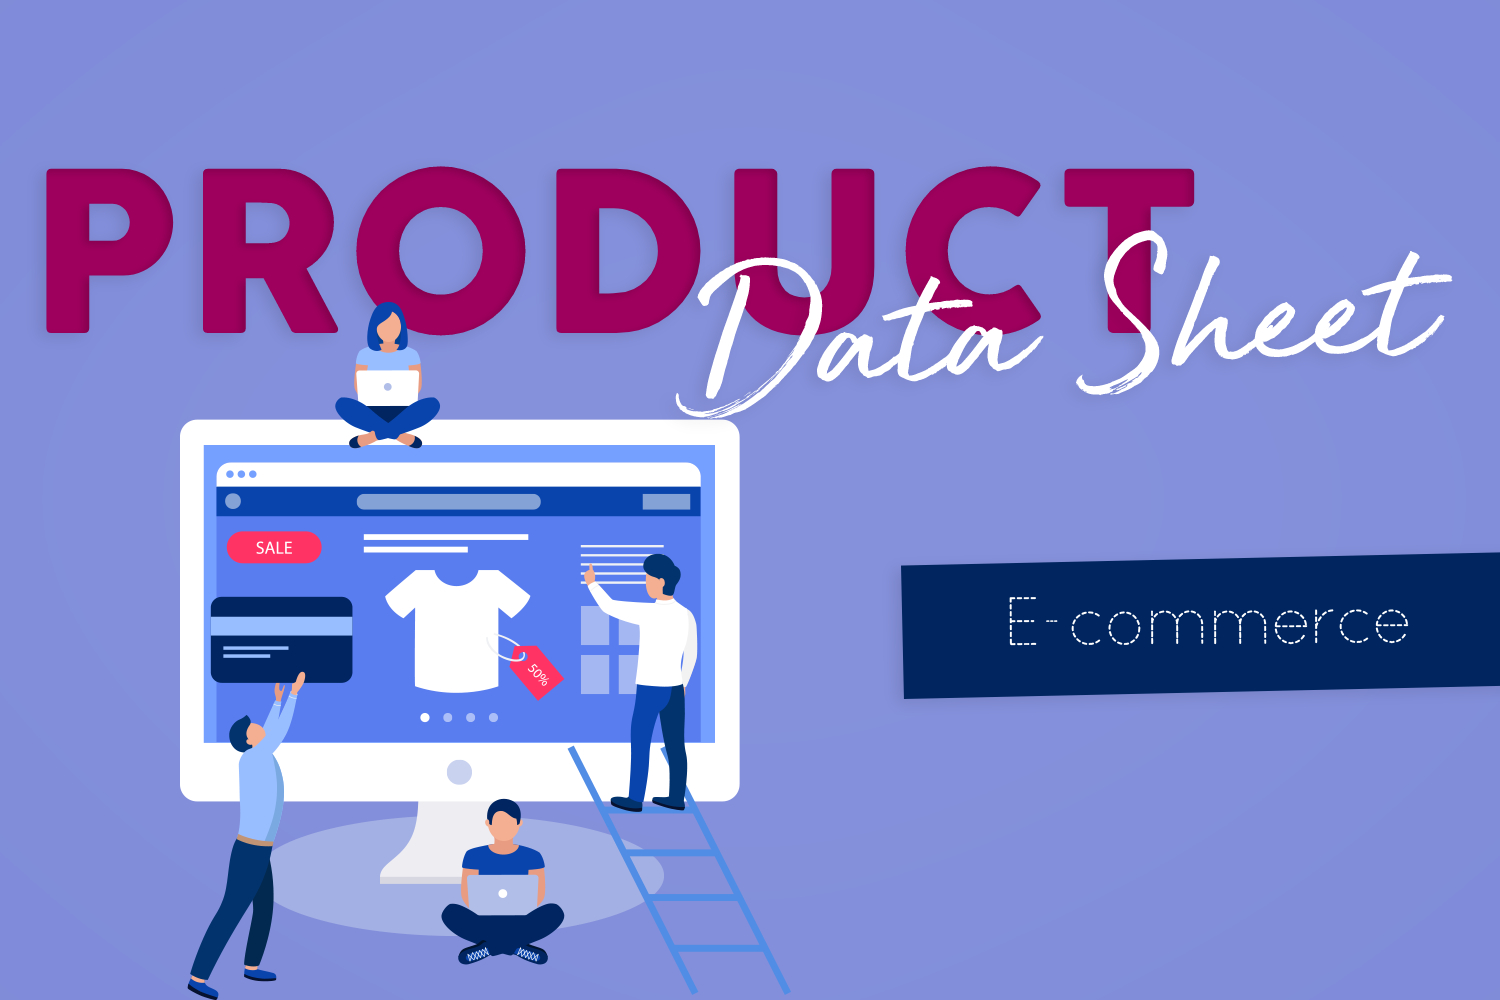 How to Build the Perfect Product Data Sheet?